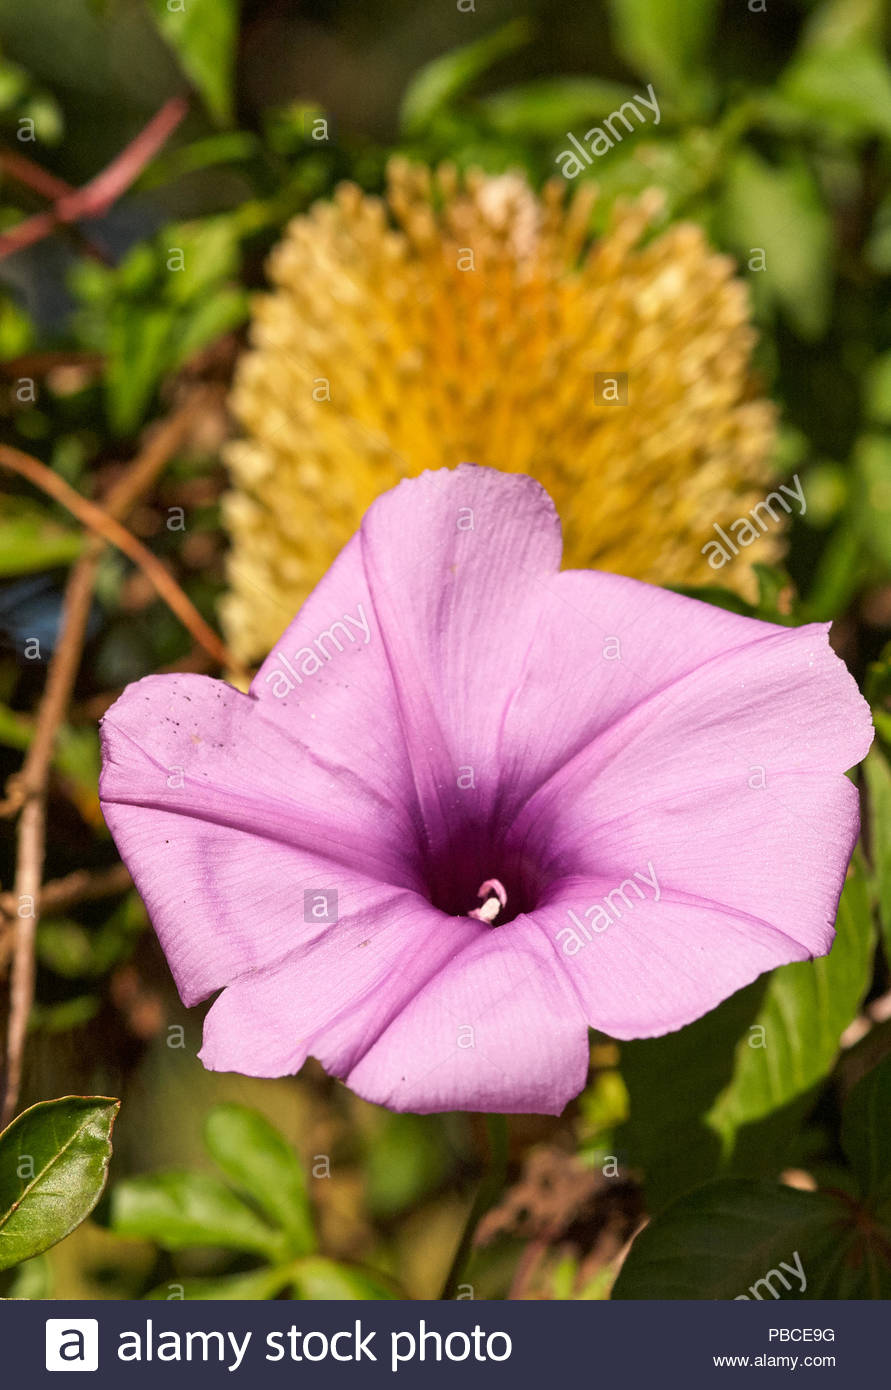 A purple Morning Glory(Convolvulaceae) flower, with a golden Banksia(Proteaceae) bloom in the background; surrounded by green blurred vegetation. - Stock Image